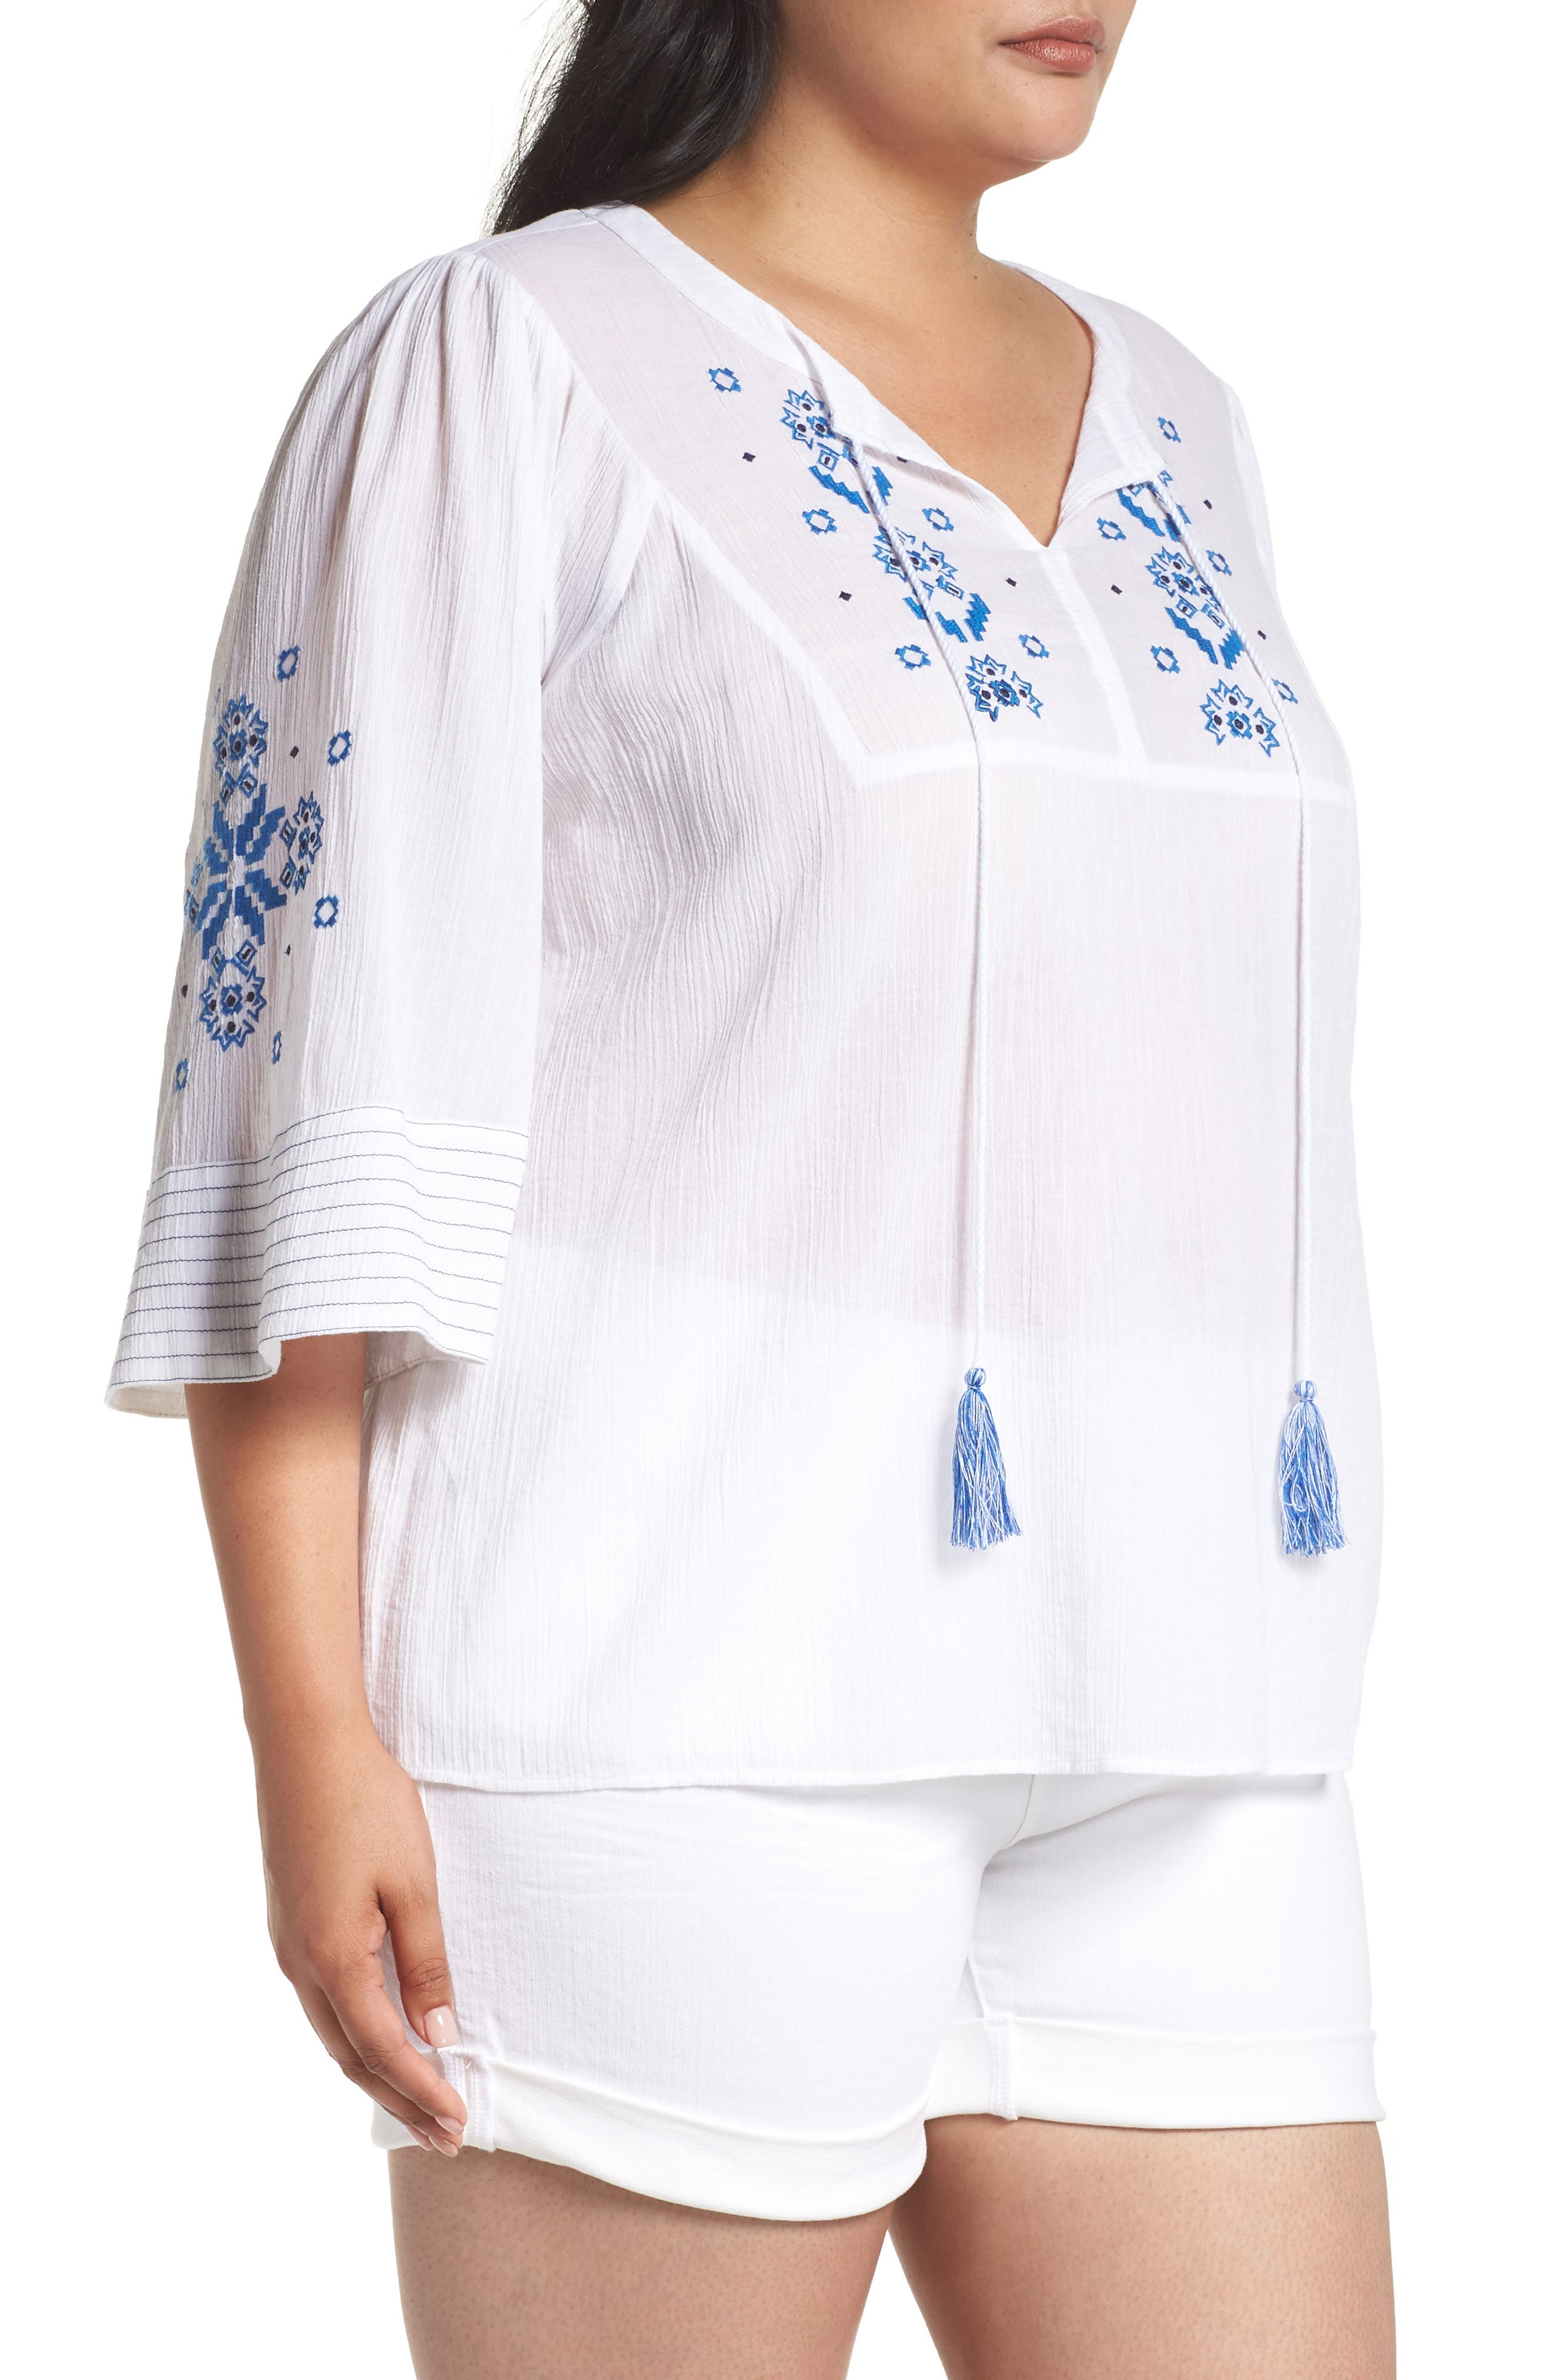 VINCE CAMUTO,                             Bell Sleeve Embroidered Top,                             Alternate thumbnail 3, color,                             145